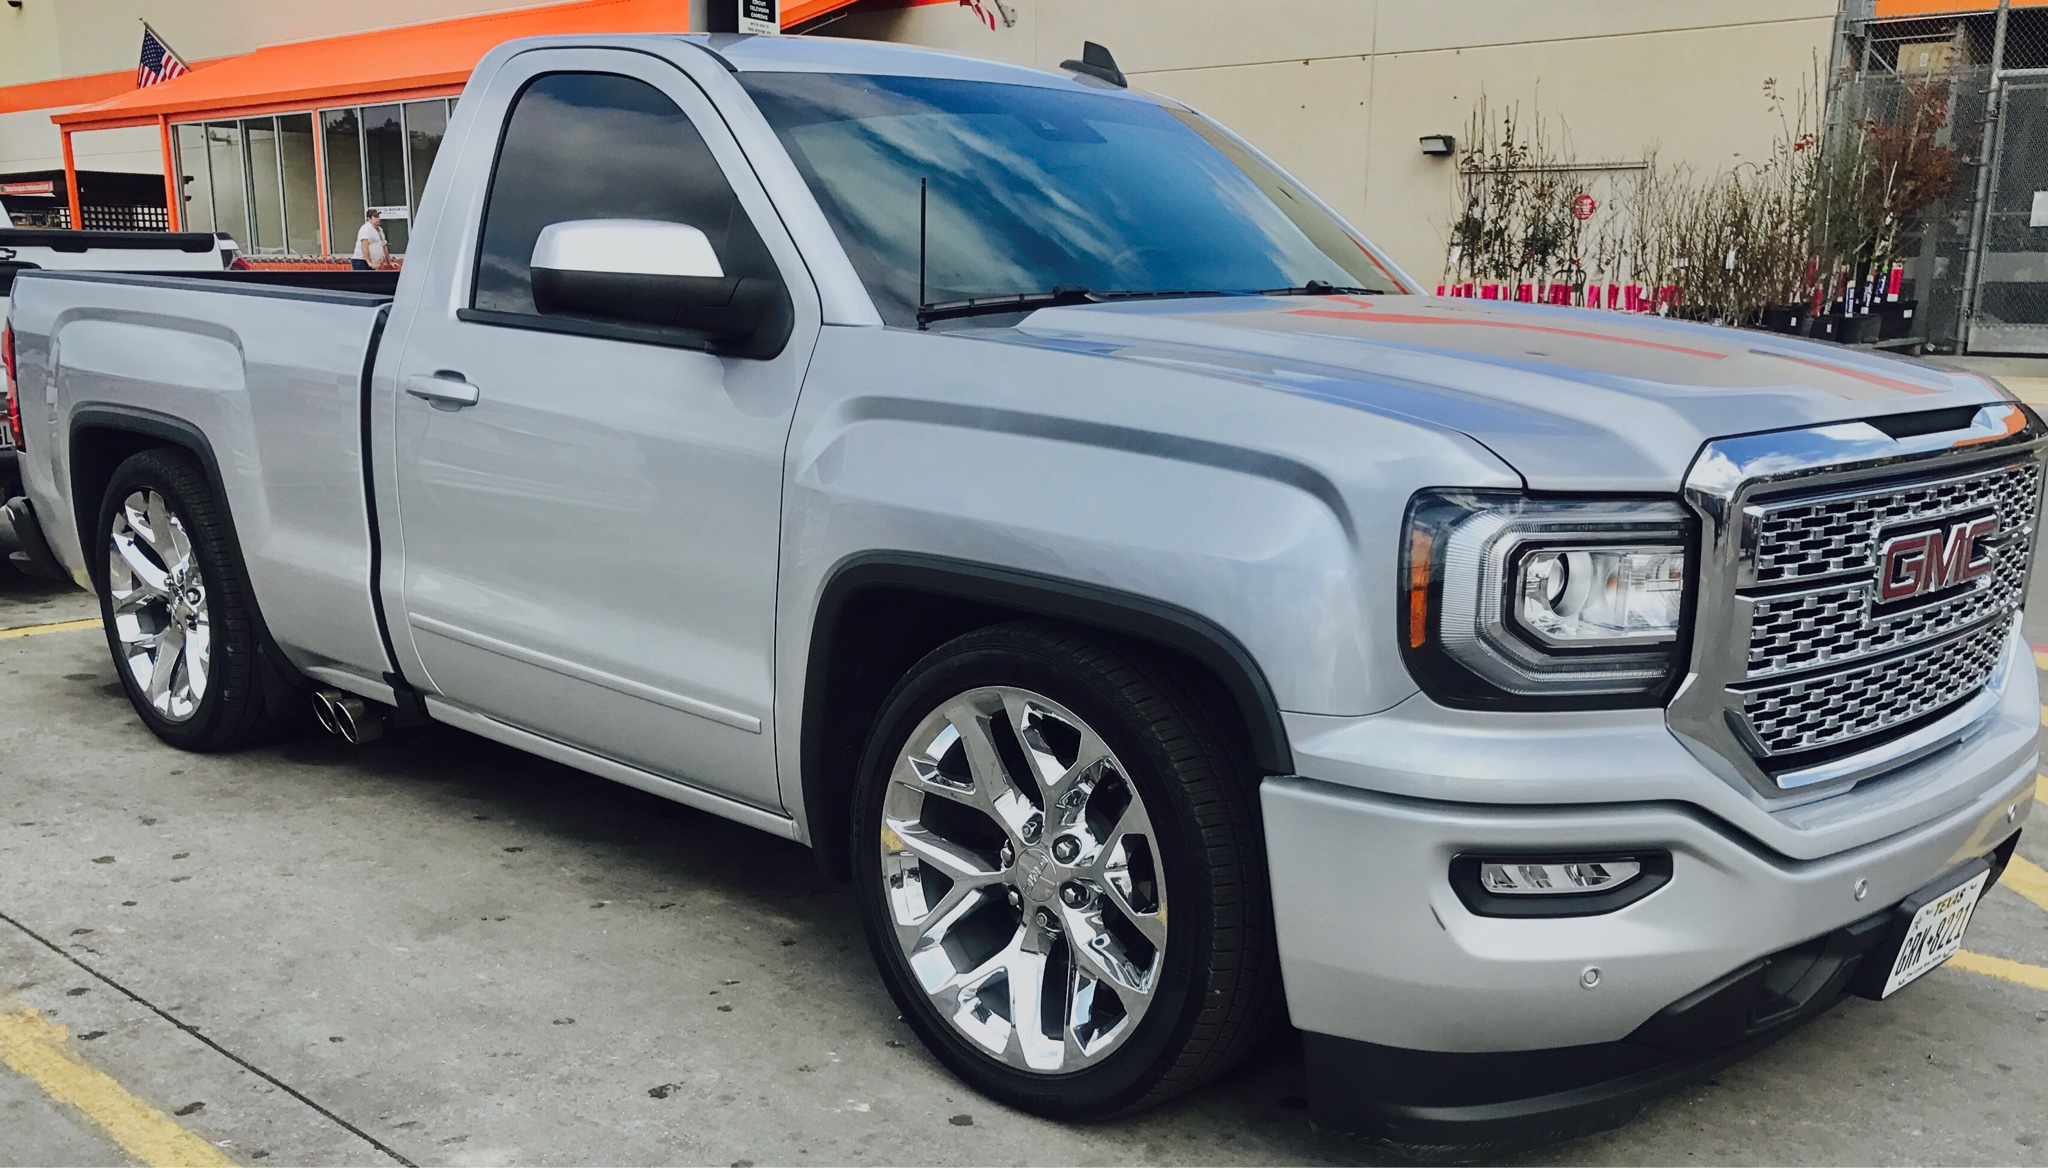 Gmc Trucks Single Cab >> Lowered guys what's your tire size!? - 2014-2018 Silverado & Sierra Mods - GM-Trucks.com